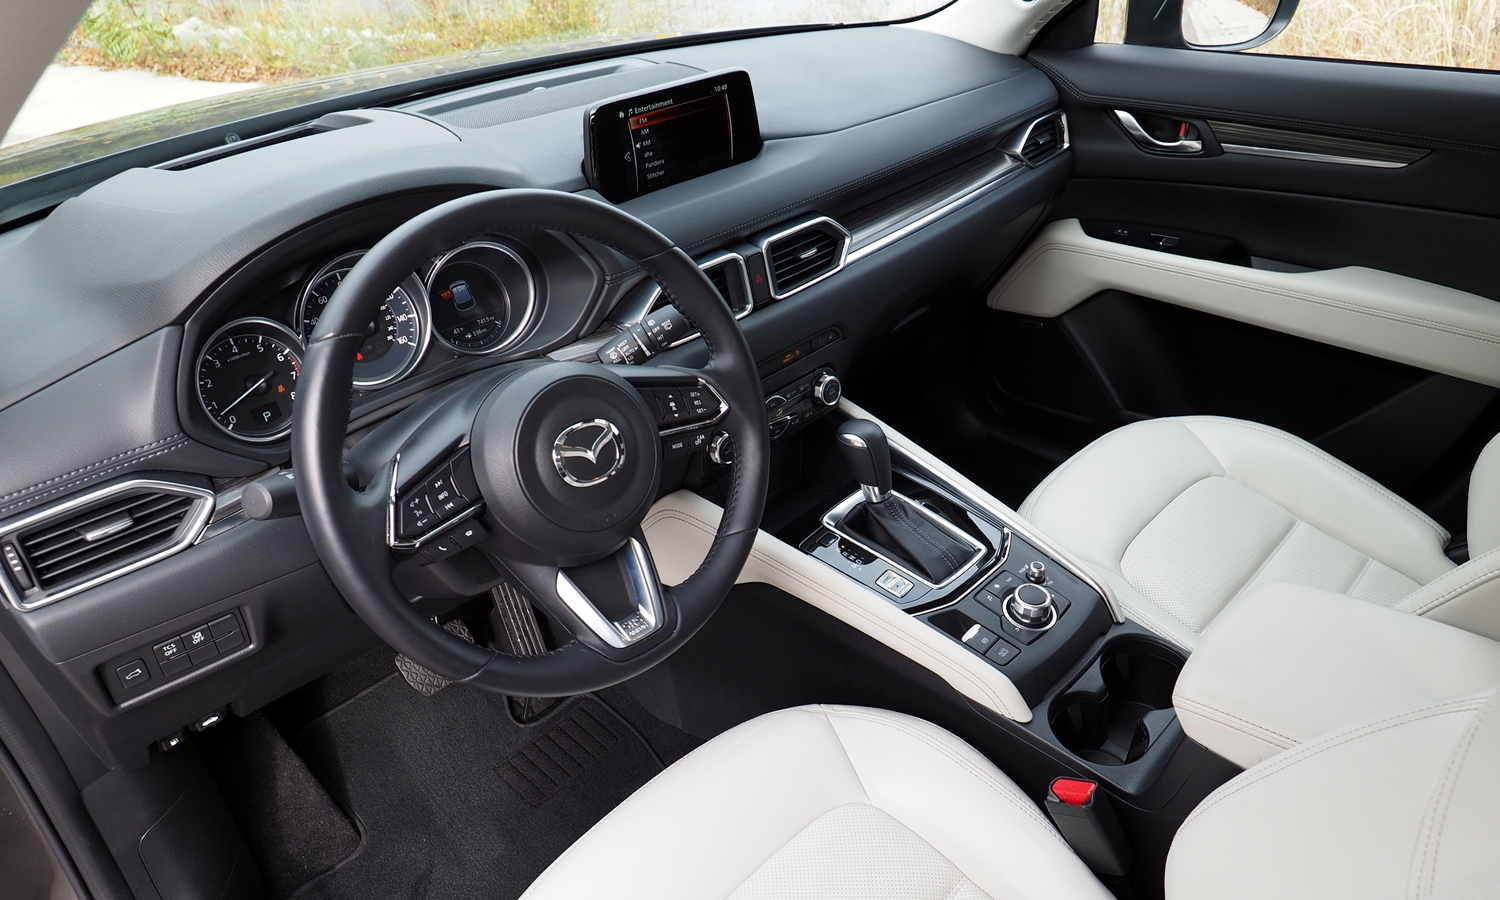 CX-5 Reviews: 2017 Mazda CX-5 interior